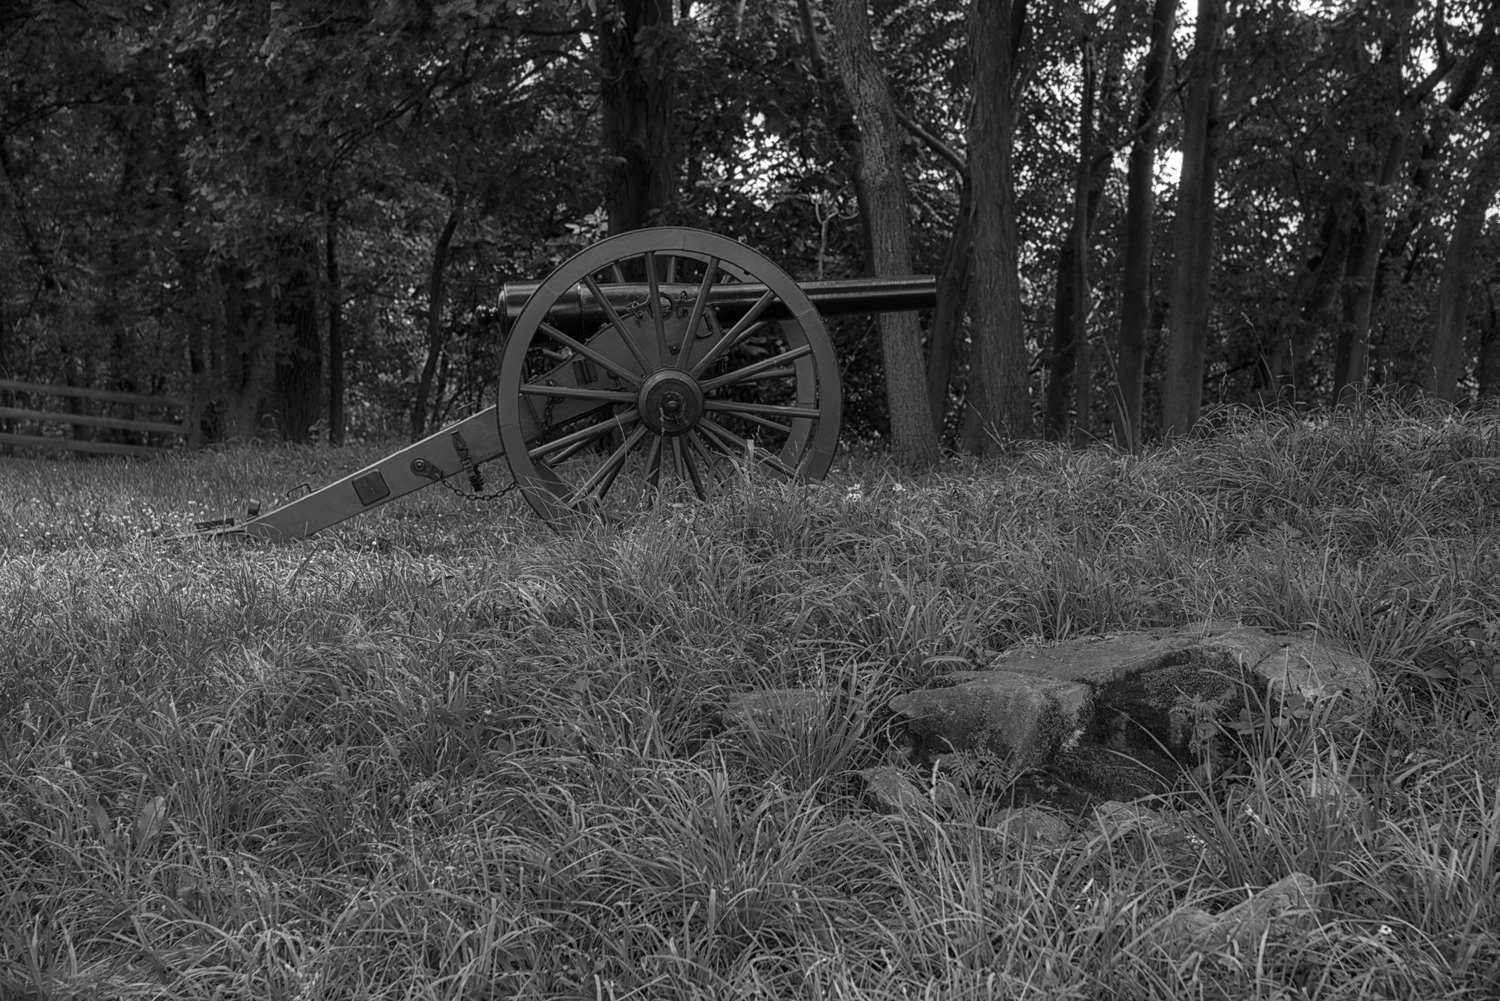 B&W_Canon-in-the-Woods001(2016-08-24-09-59-26).jpg